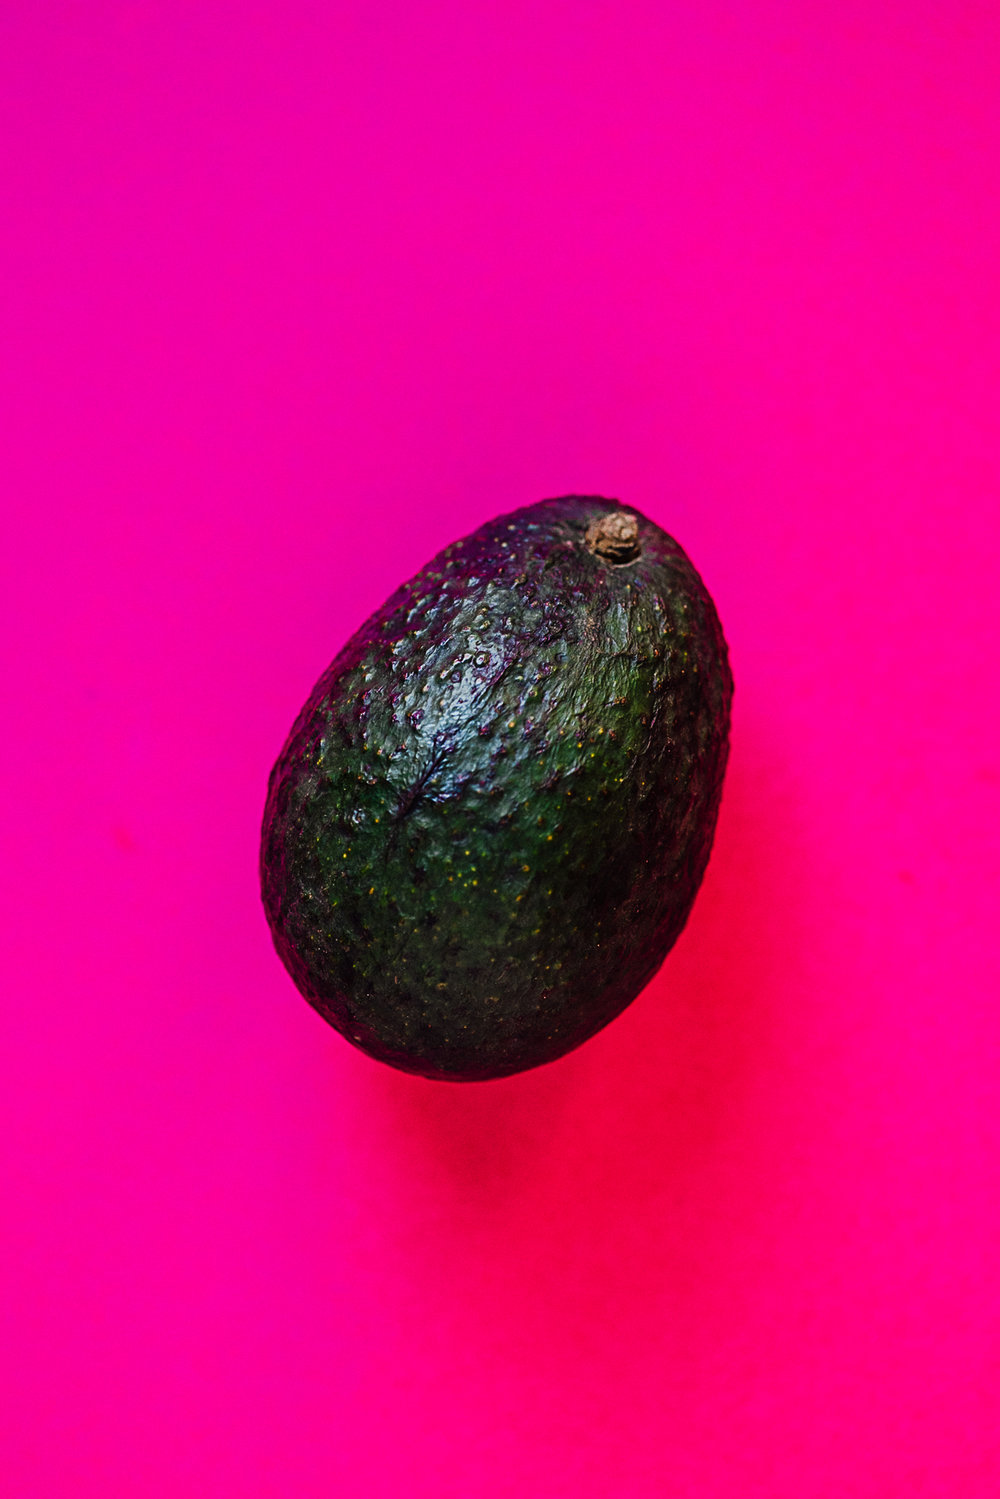 avocado_NAIVASHA_BUDGETHUNGRY_FOOD_VEGGIE.jpg